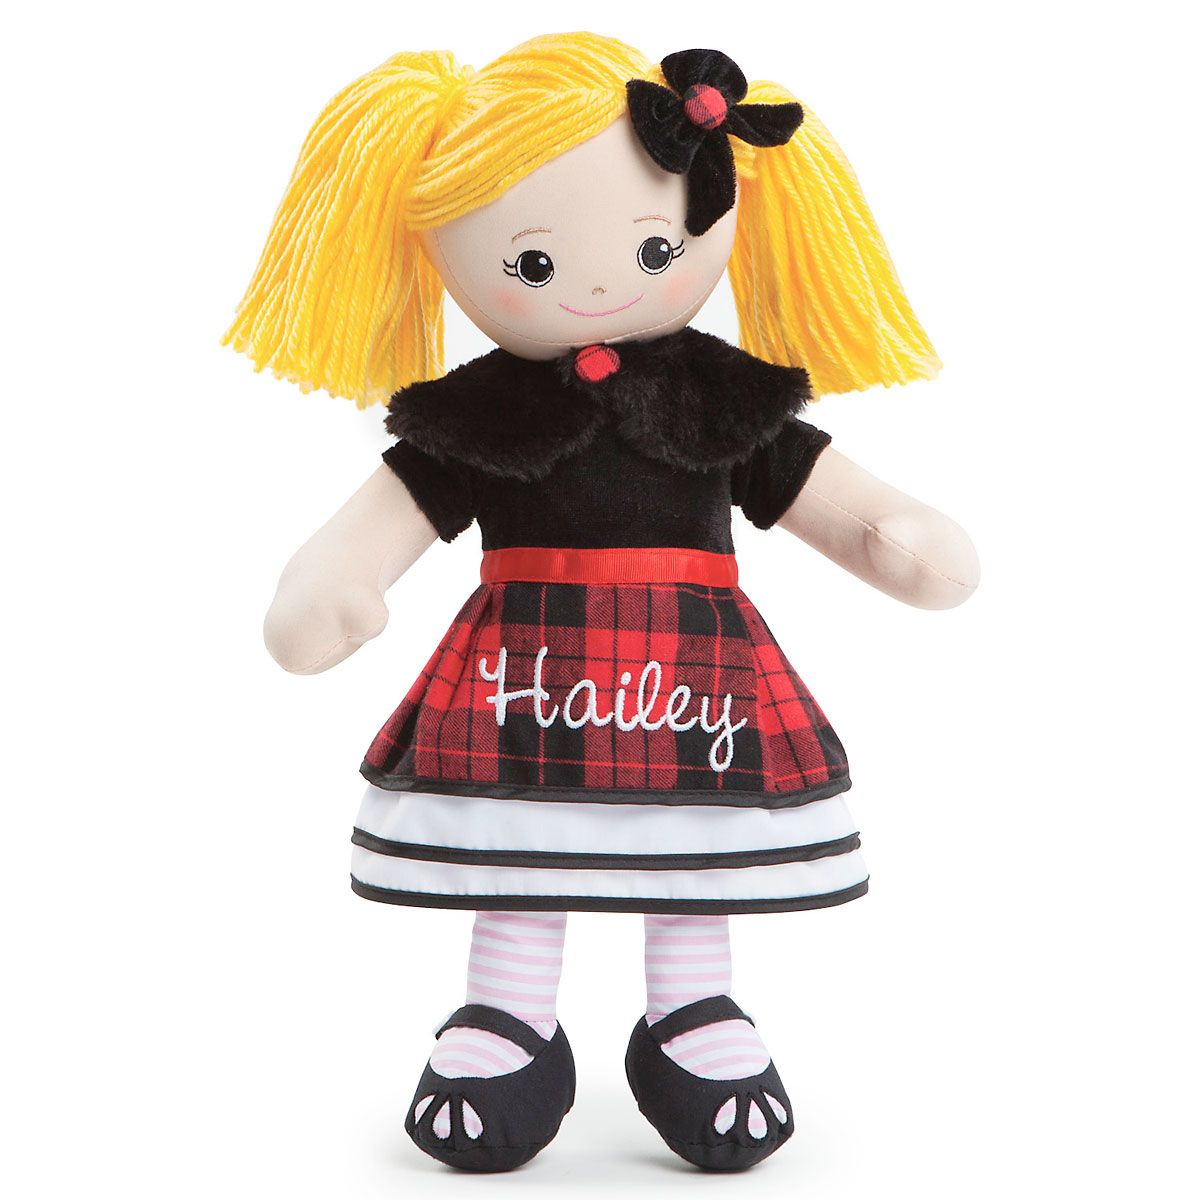 Personalized Blonde Rag Doll in Plaid Dress